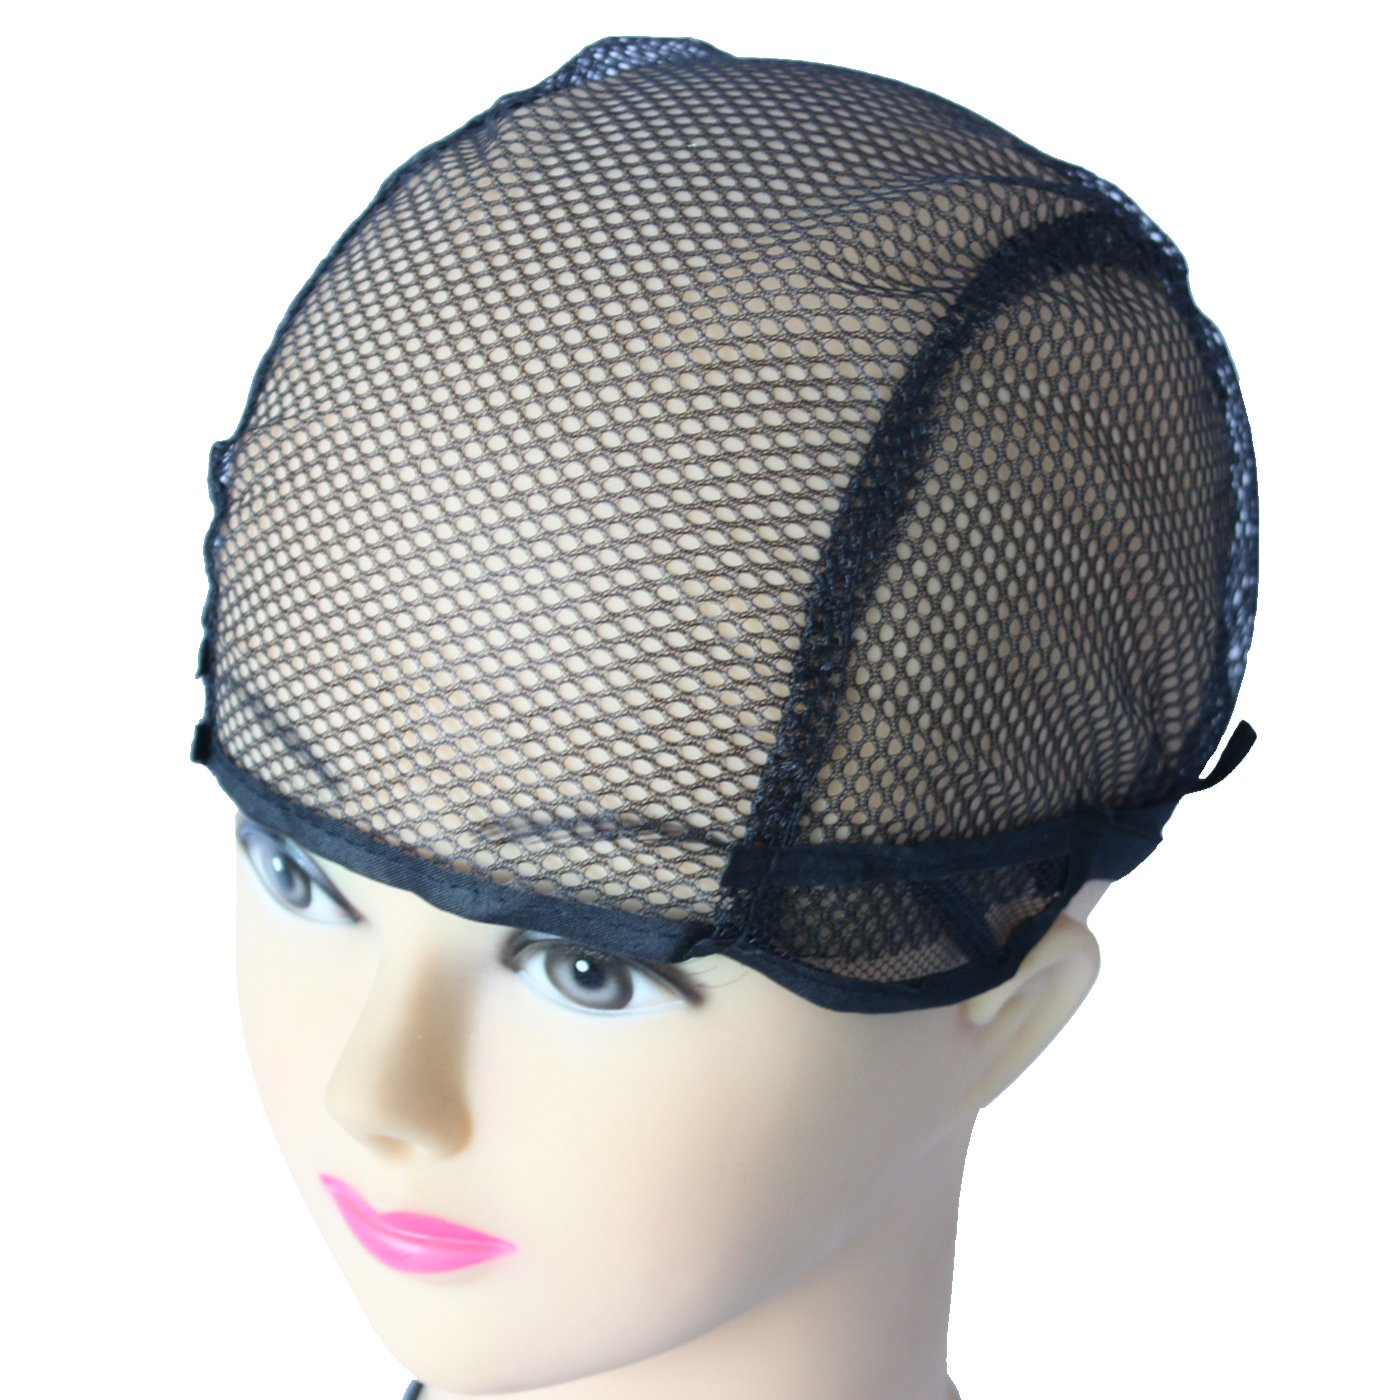 WeKen Pack of 50pcs Wig Cap for Making Wigs Black Mesh with Adjustable Straps Small Size by WeKen (Image #1)